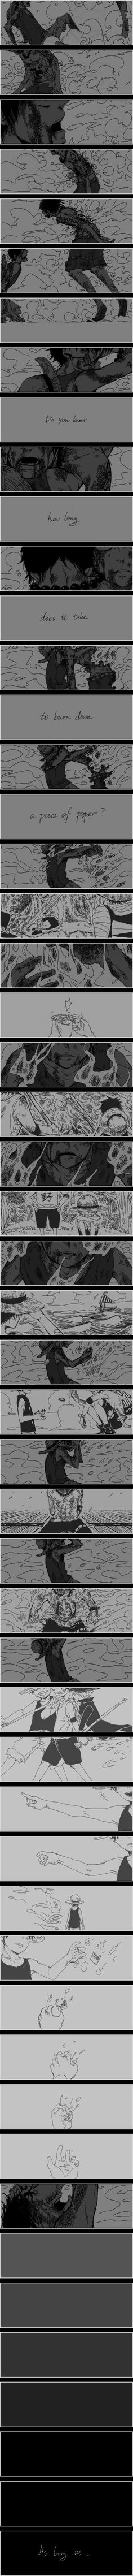 Luffy, Ace, sad, text, crying, death, young, childhood, different ages, time lapse, comic, Sabo, brothers; One Piece